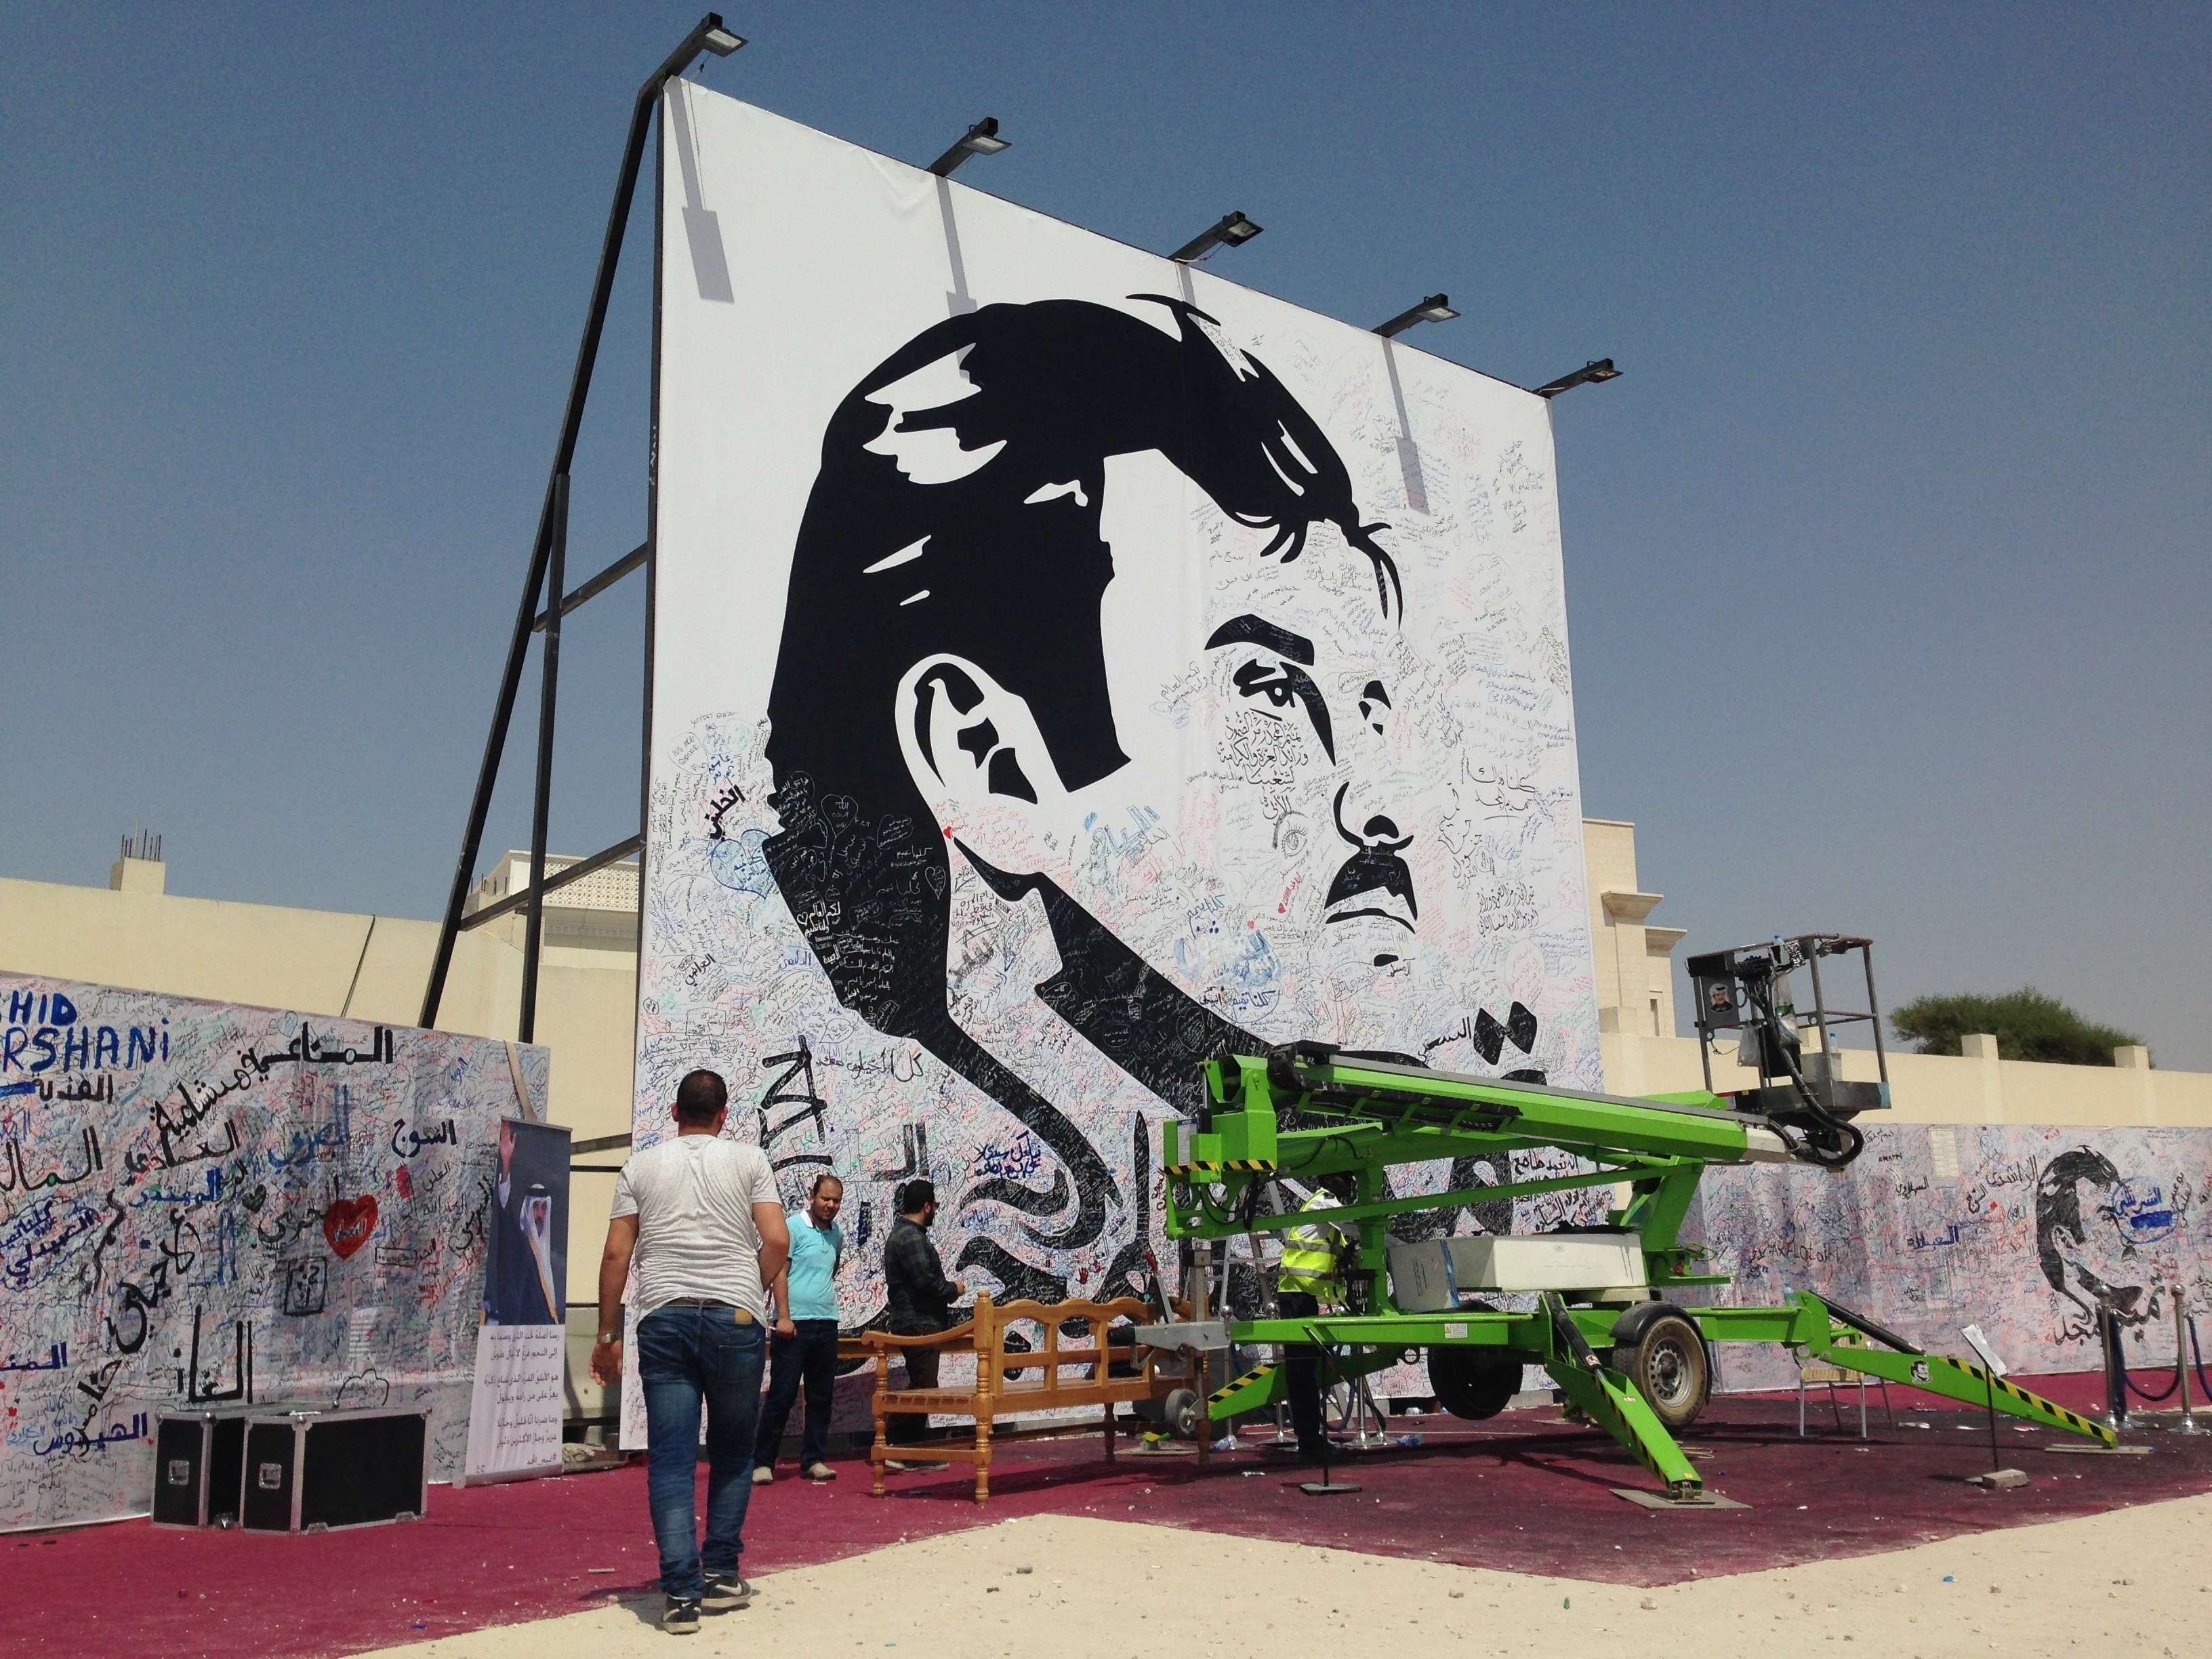 A black-and-white depiction of Qatar's Emir Sheikh Tamim bin Hamad al-Thani that was put up by authorities to attract signatures and comments from residents is seen in Doha.(AP)